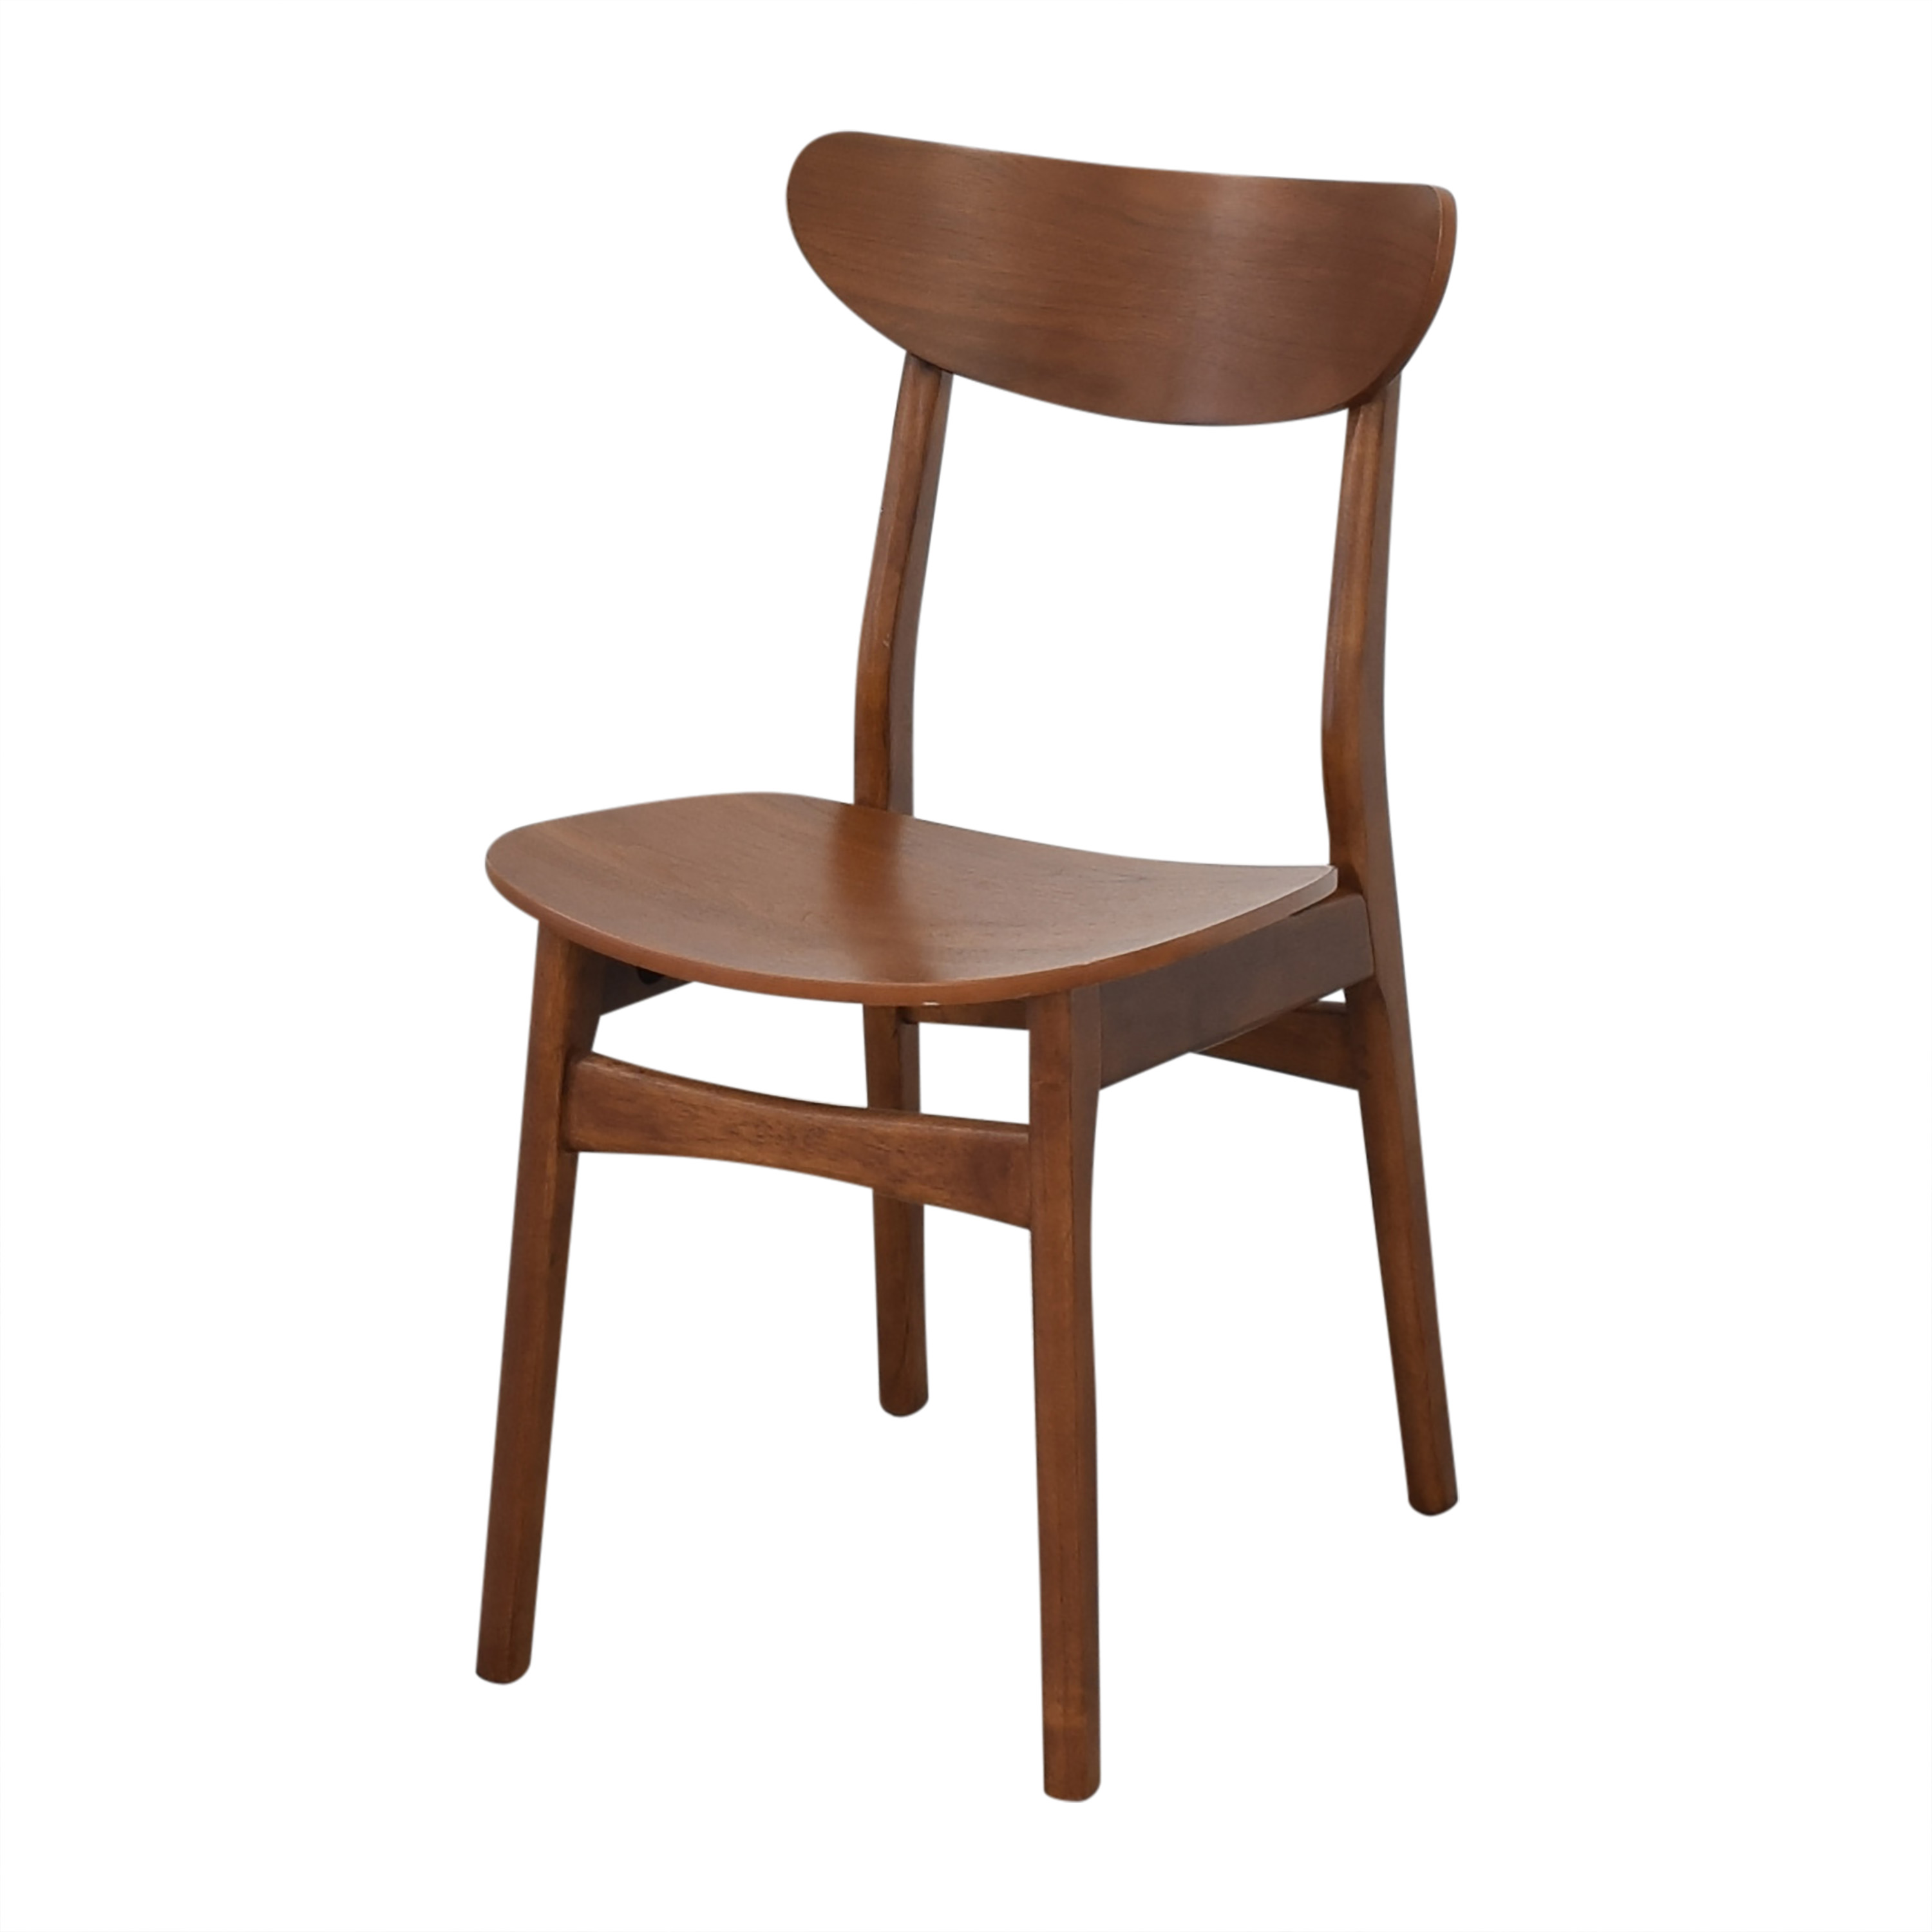 buy West Elm Classic Cafe Dining Chairs West Elm Chairs